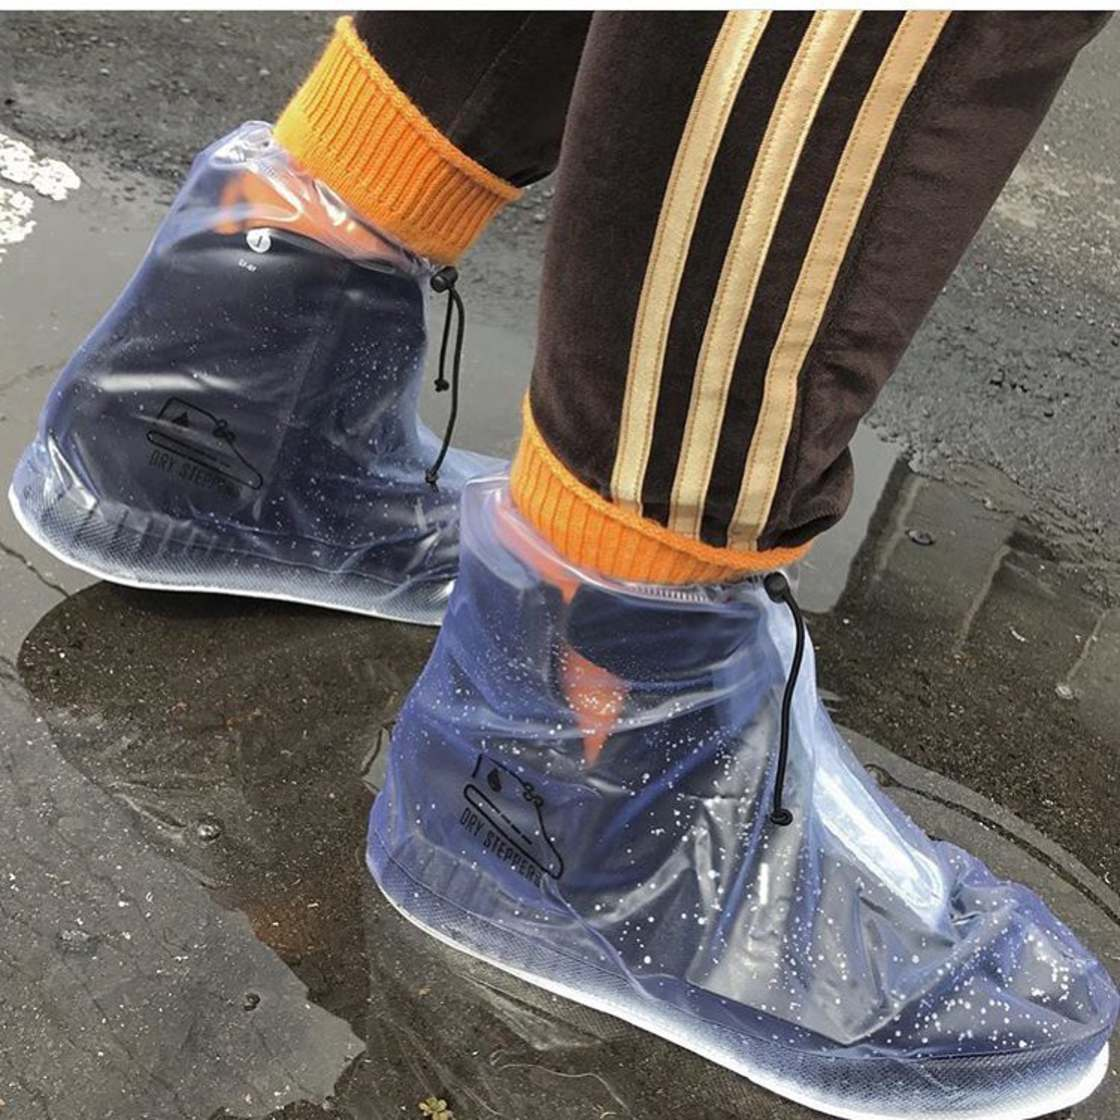 Dry Steppers - Some raincoats for your overpriced sneakers